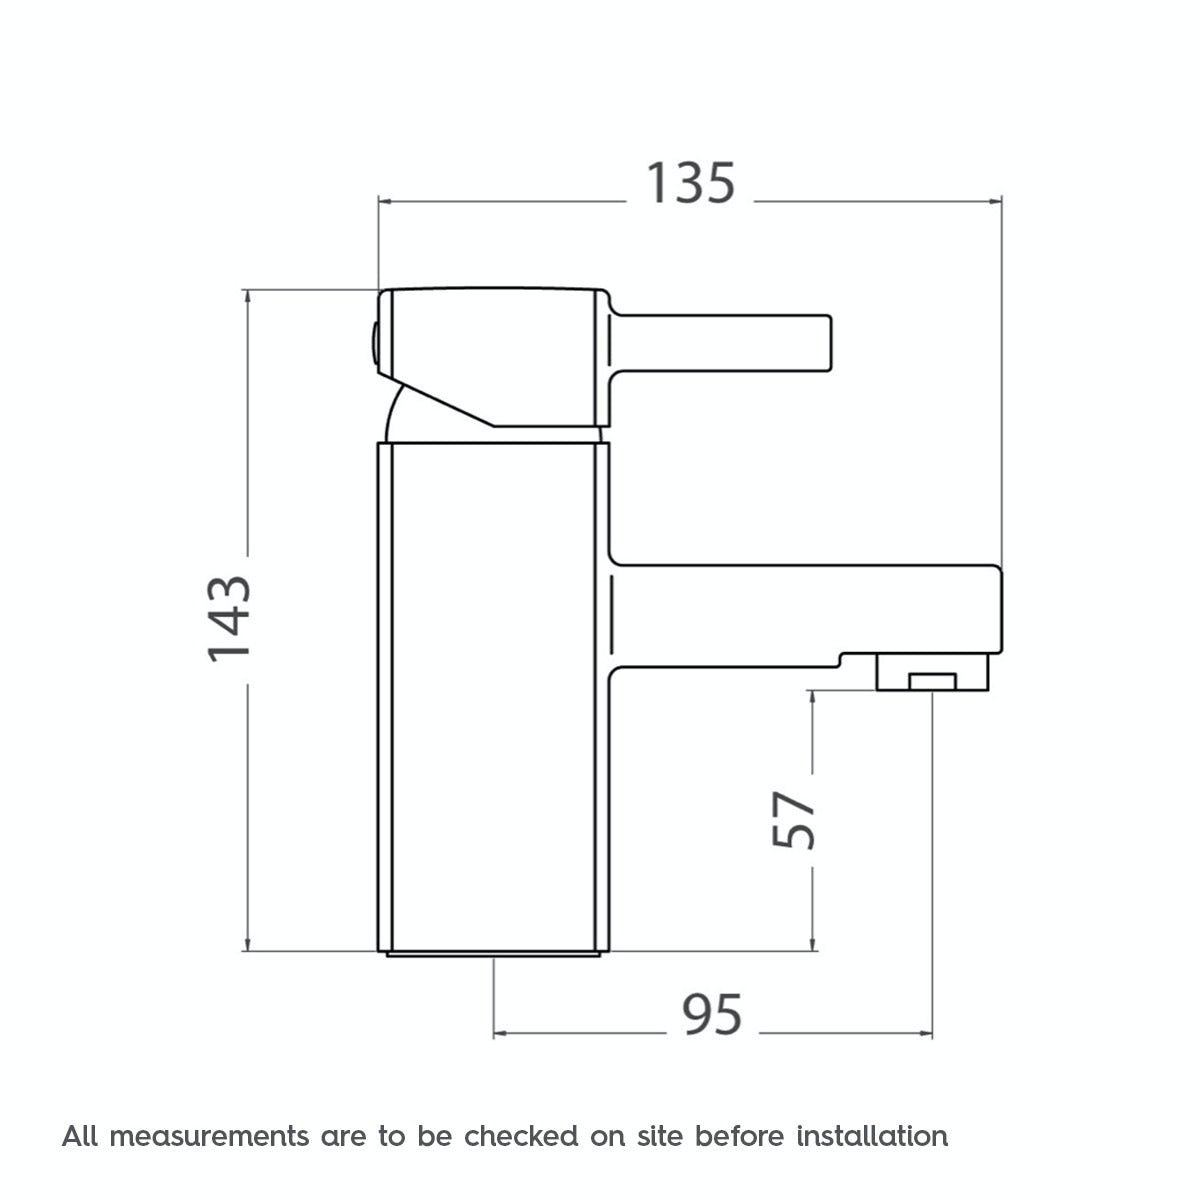 Dimensions for Orchard Derwent basin mixer tap